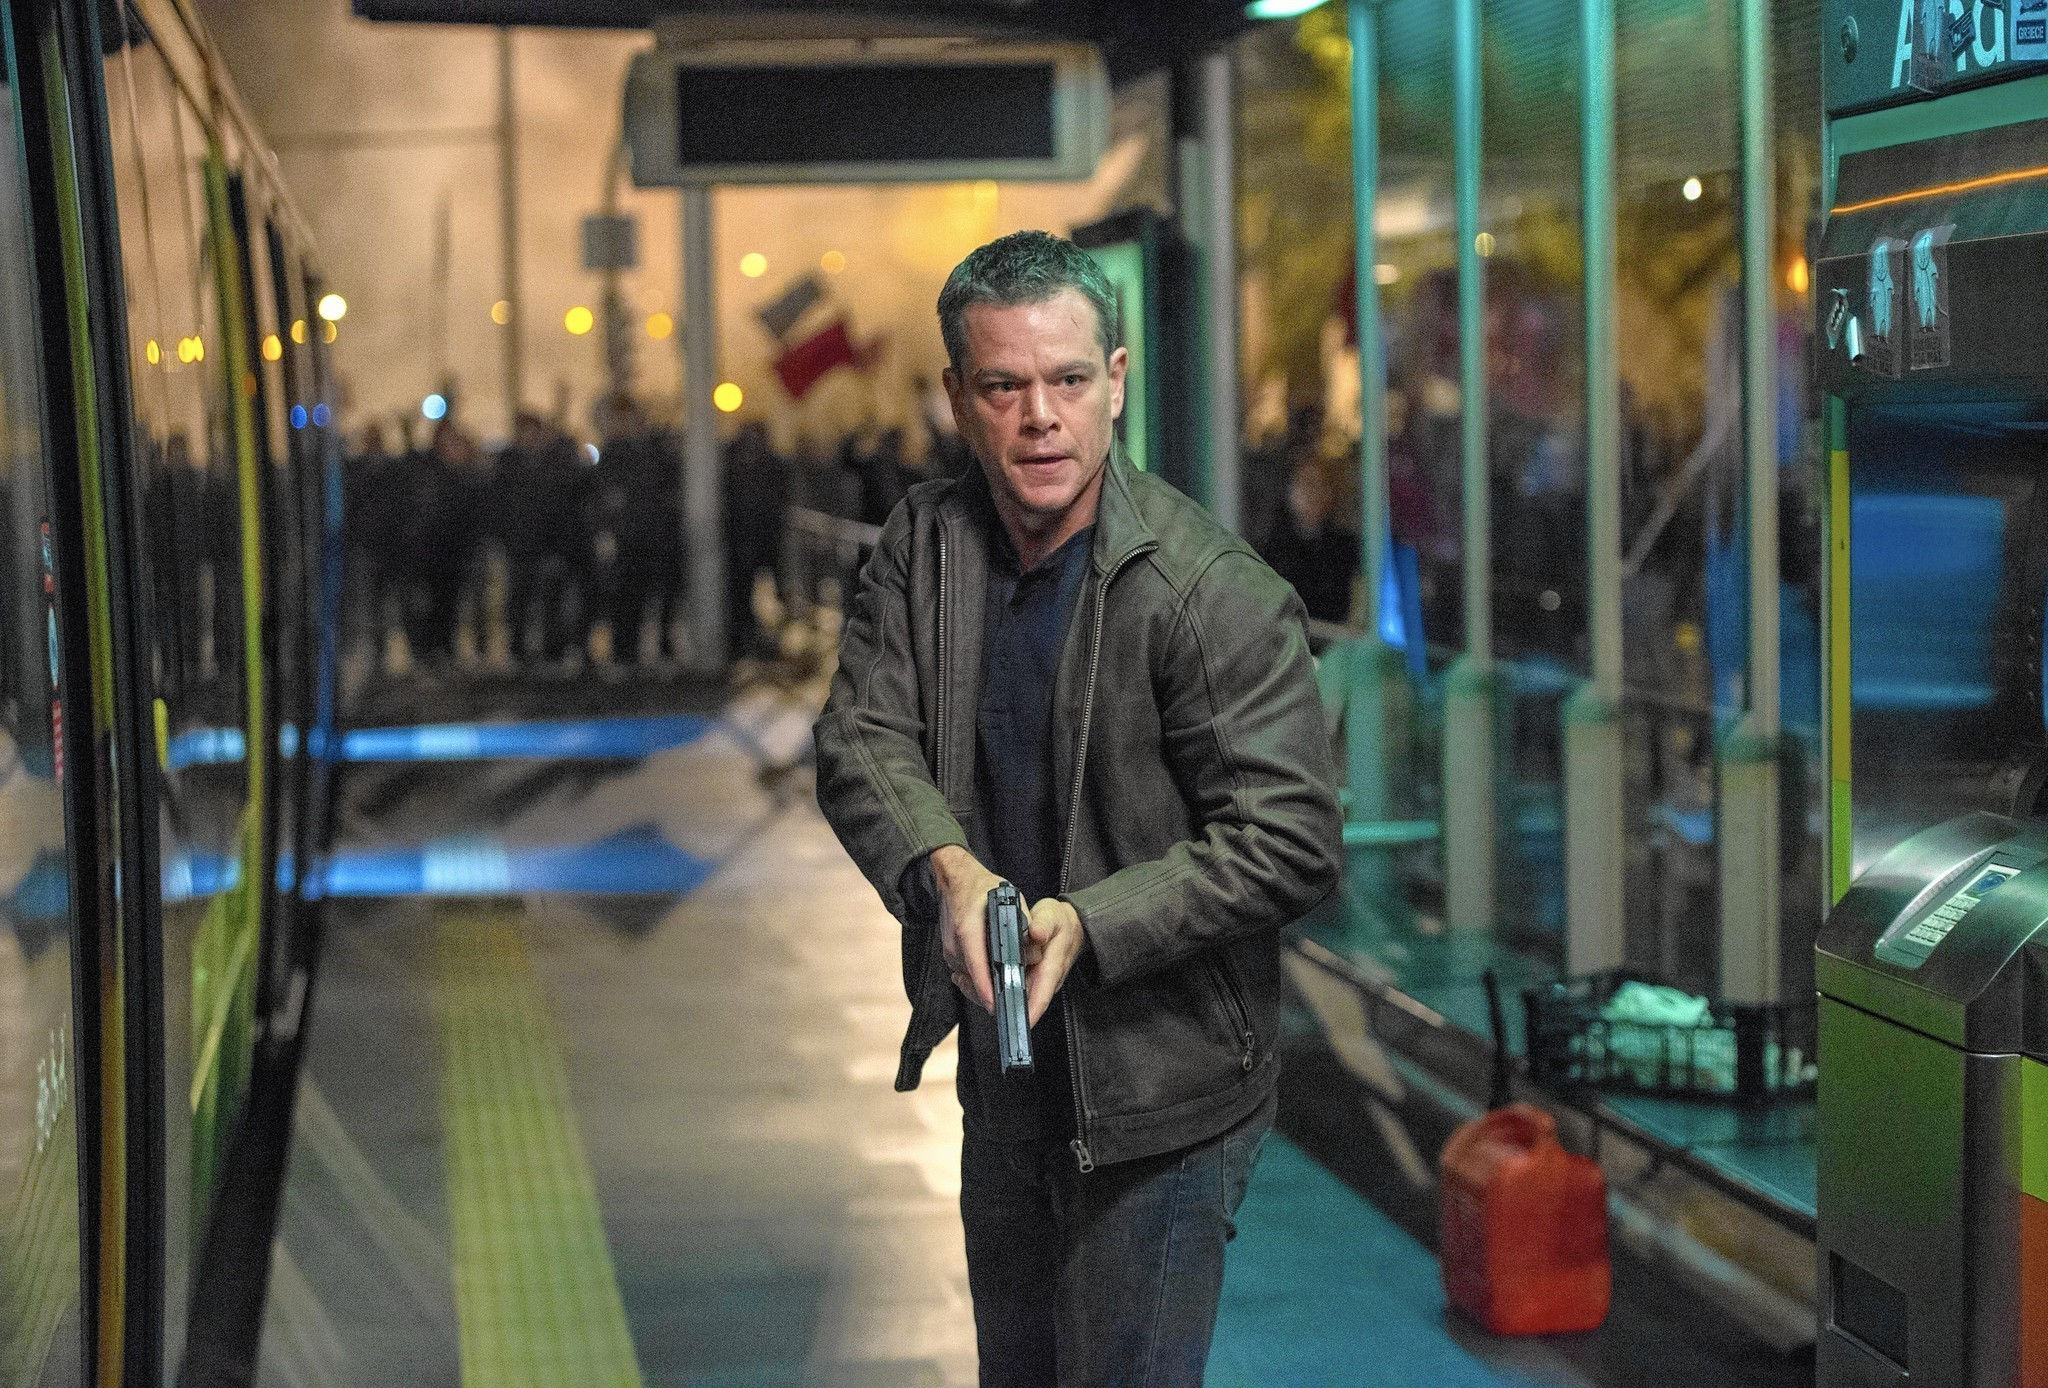 jason bourne review matt damon back in action